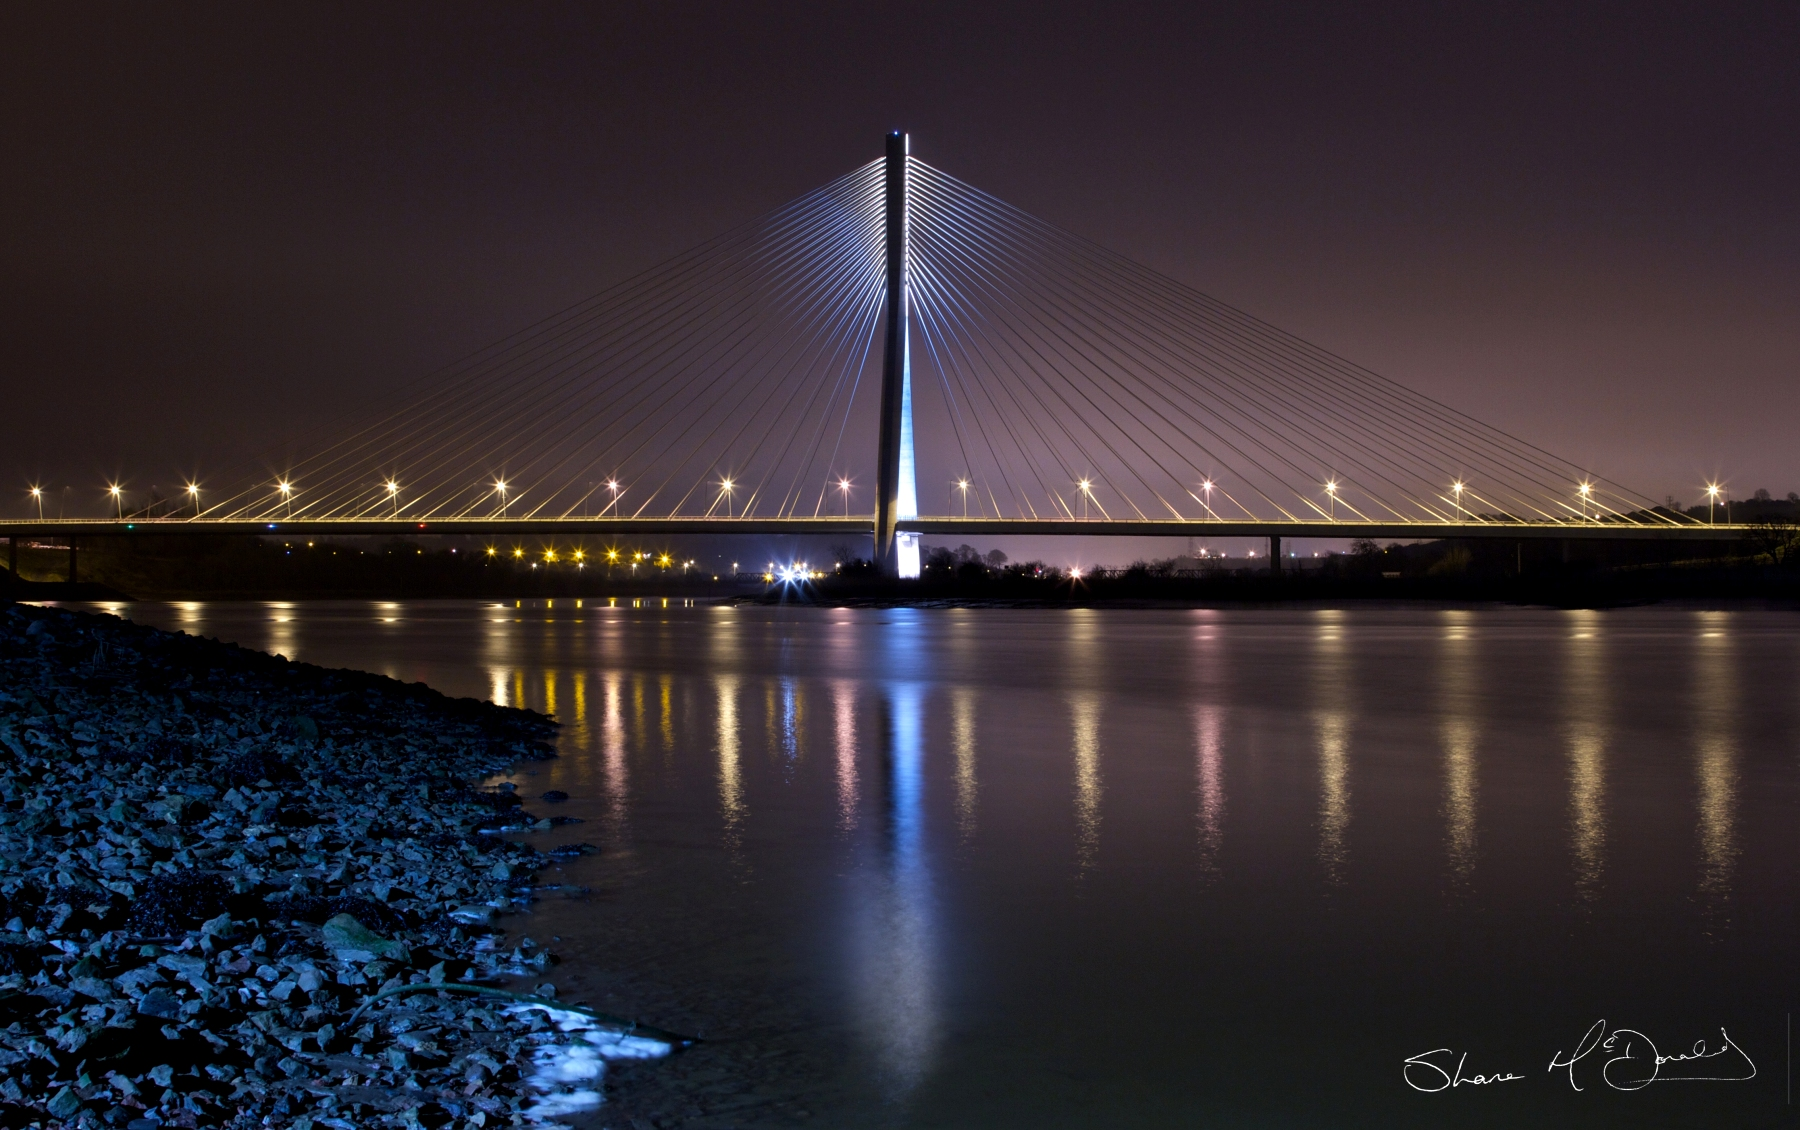 Waterford N25 Bridge at Night